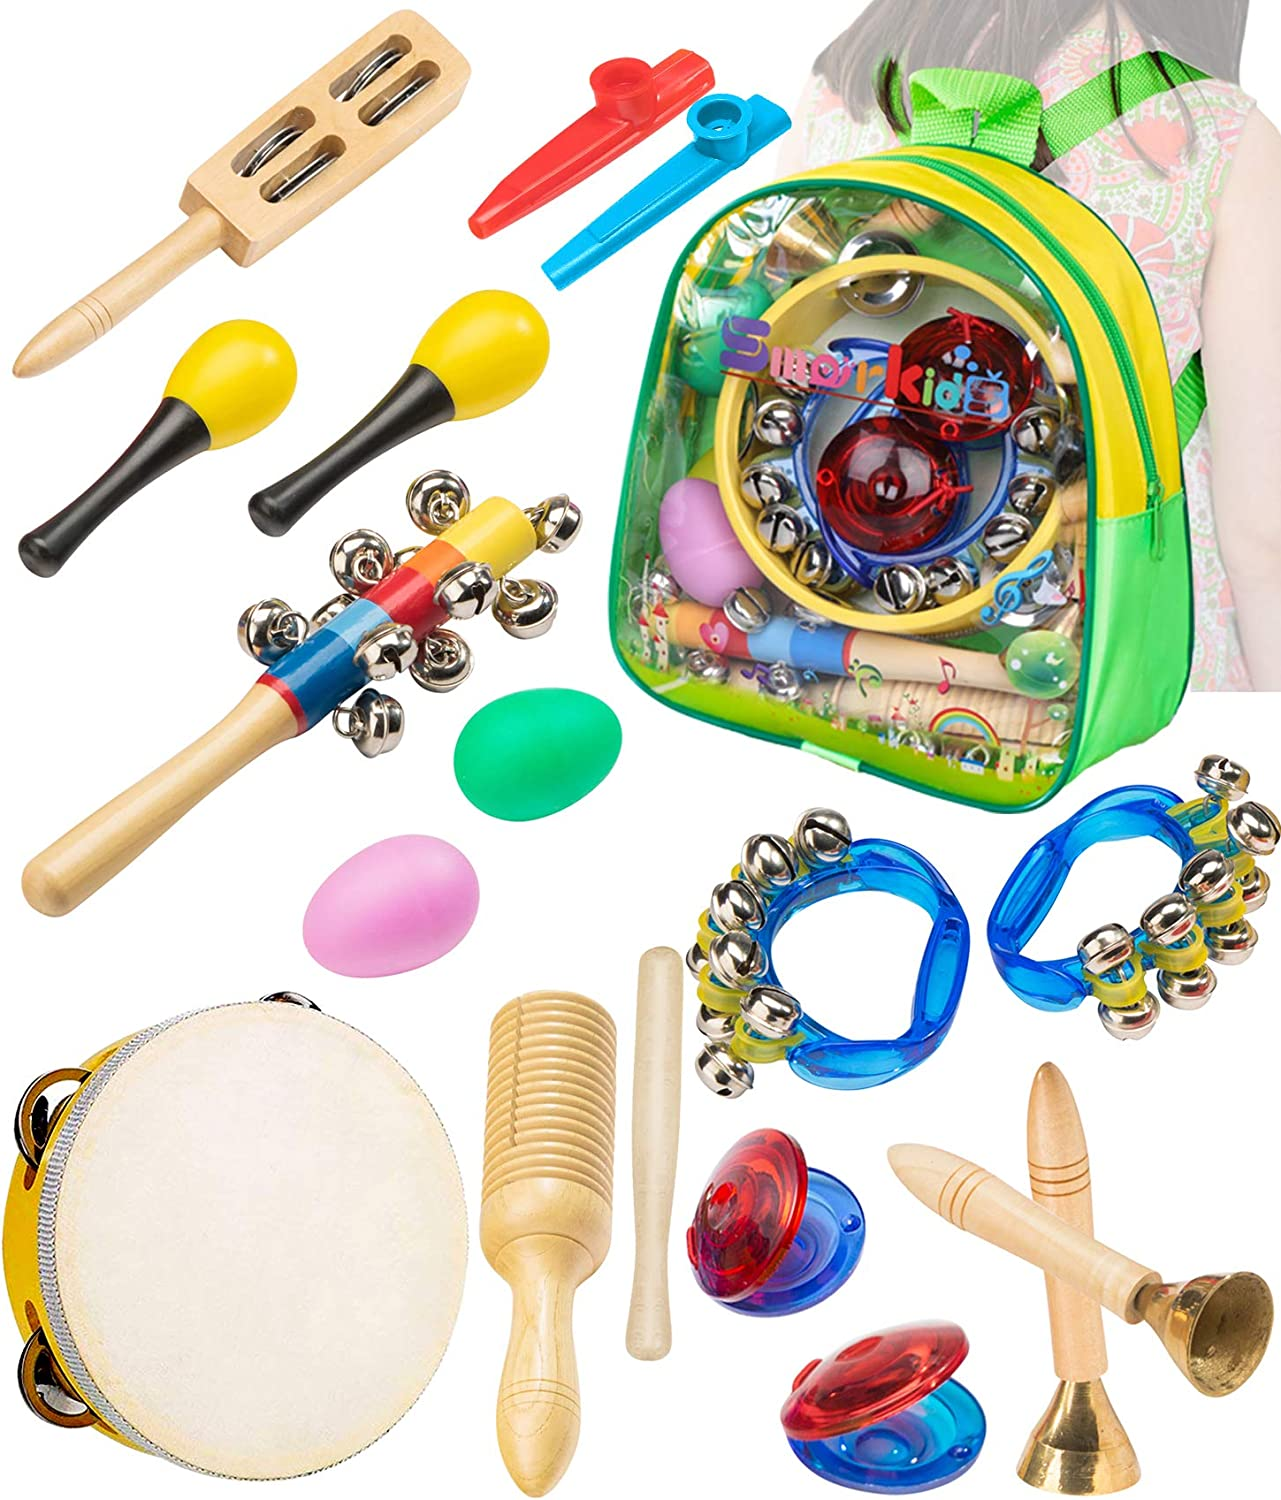 Smarkids Musical Instruments Toddler Toys Professional Preschool Music Education Toys Percussion Instruments Set Music Early Learning Toys Gifts for